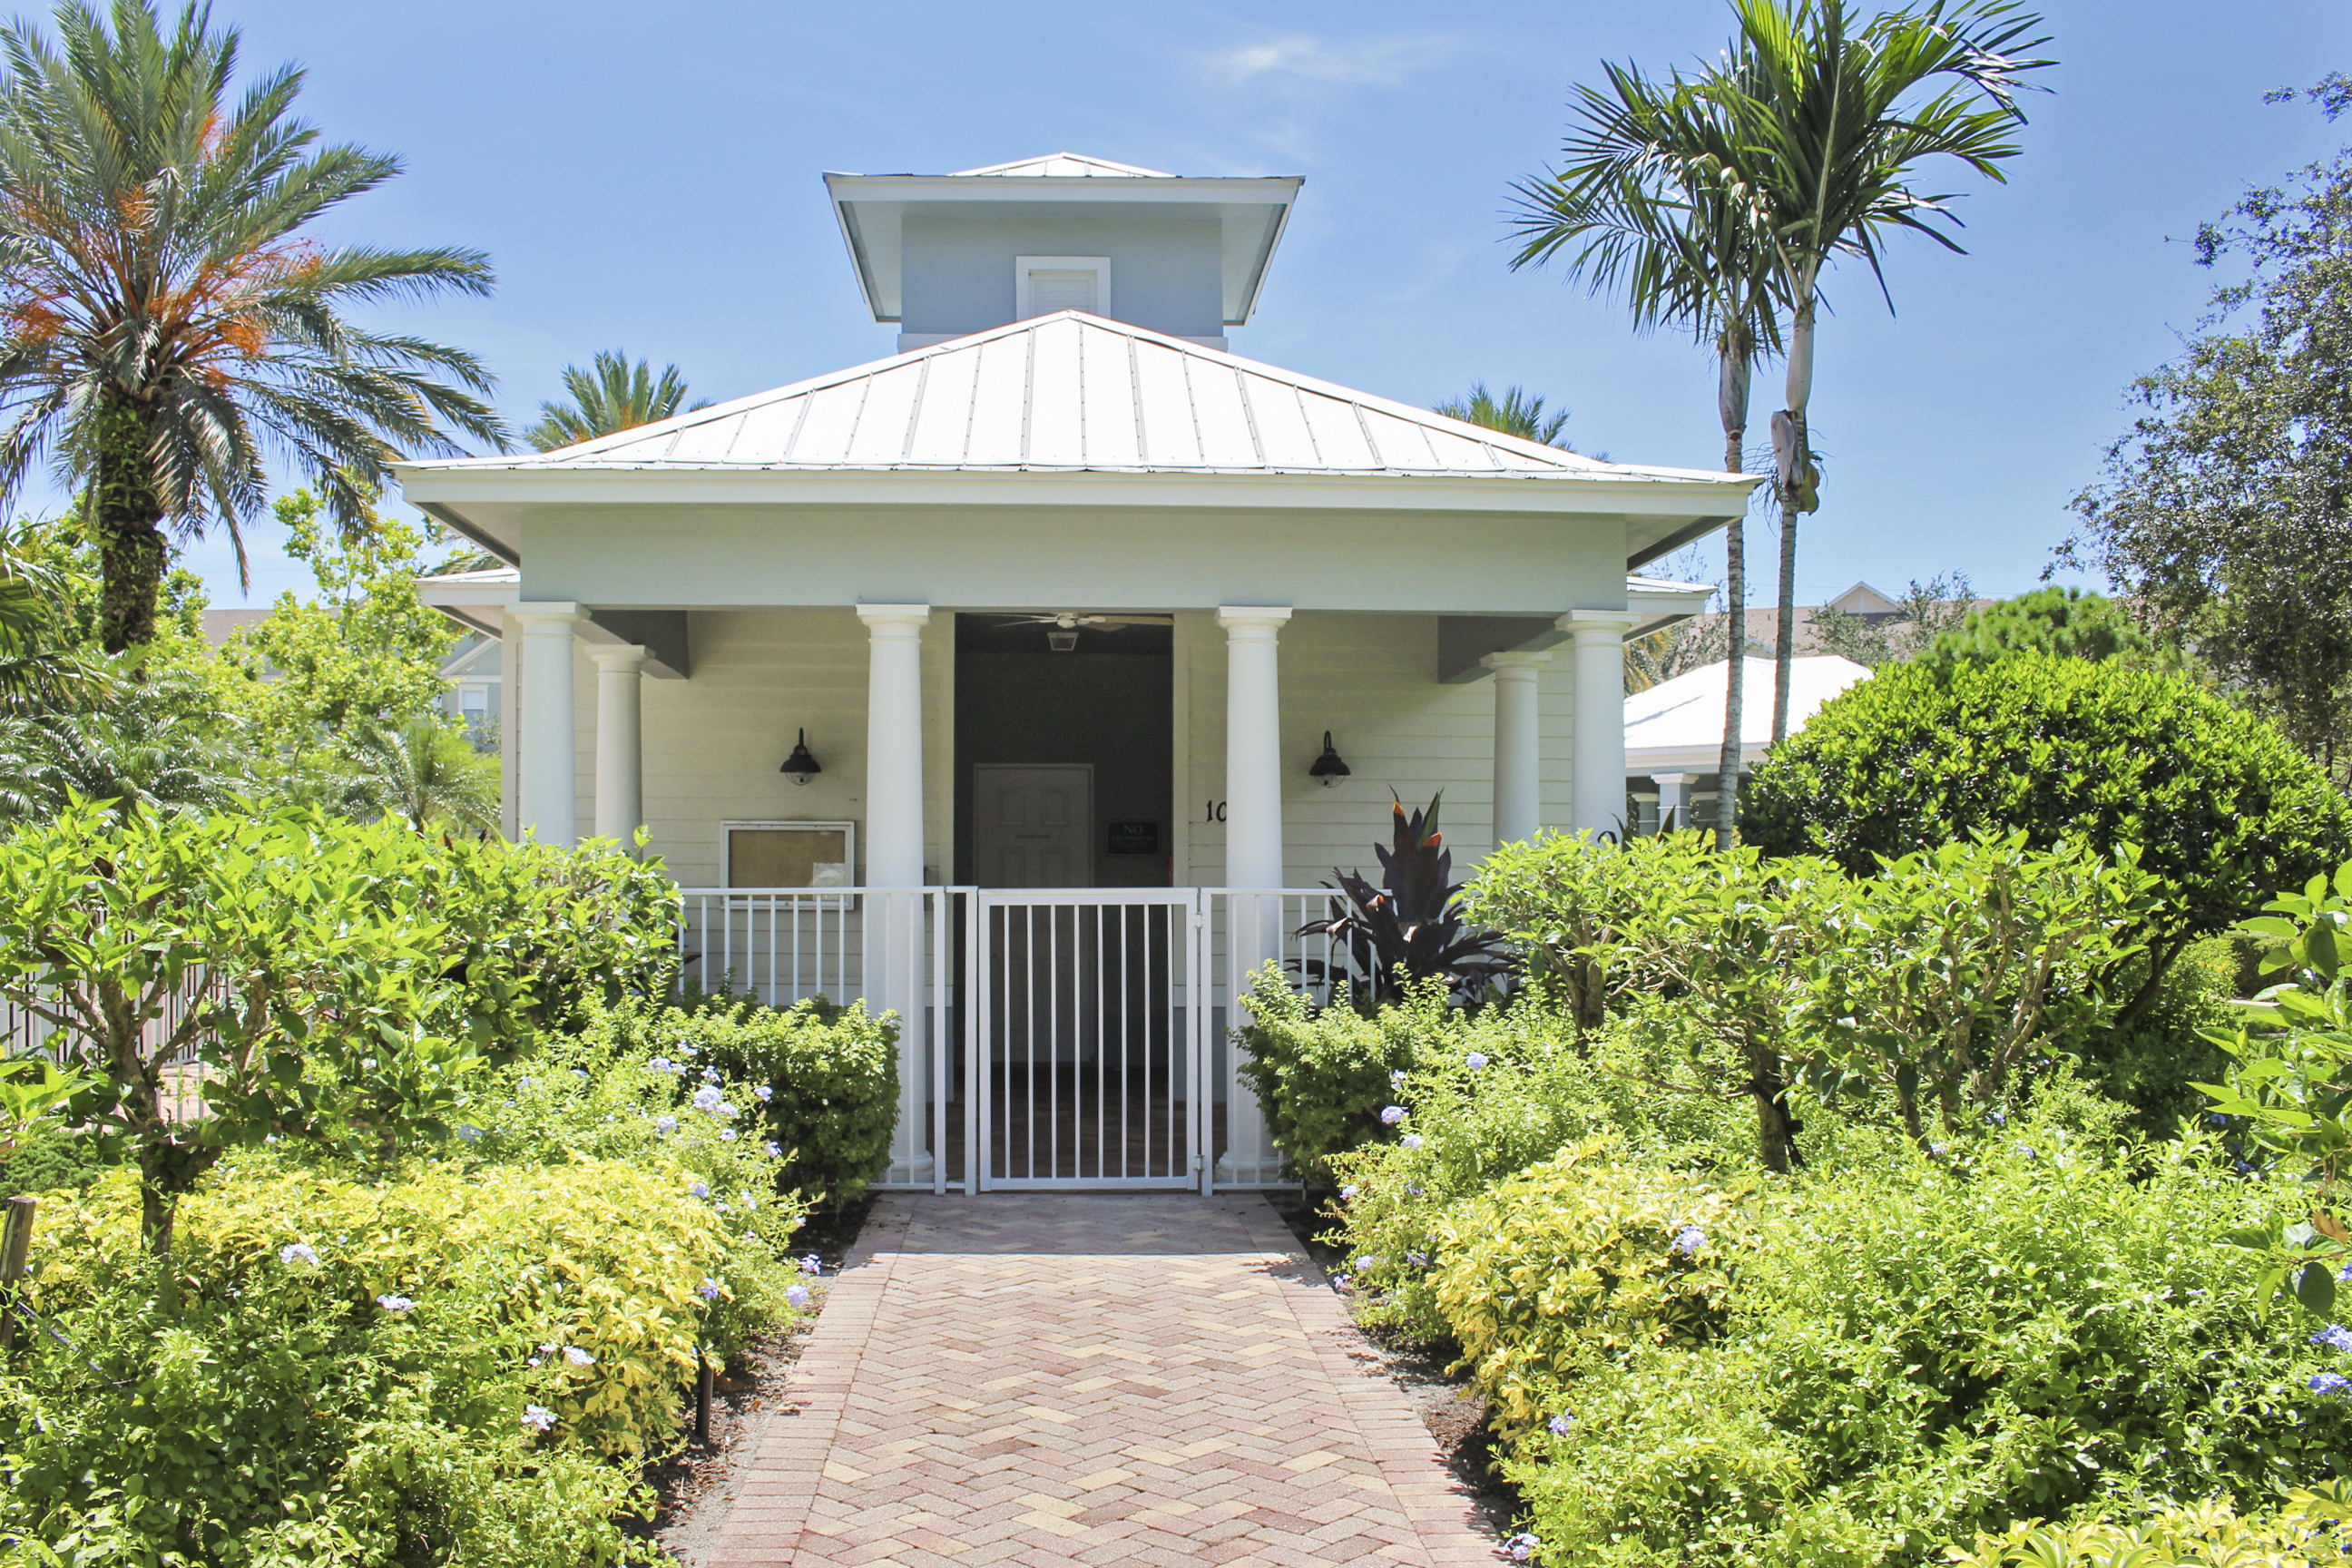 Botanica Real Estate and Homes for sale in Botanica